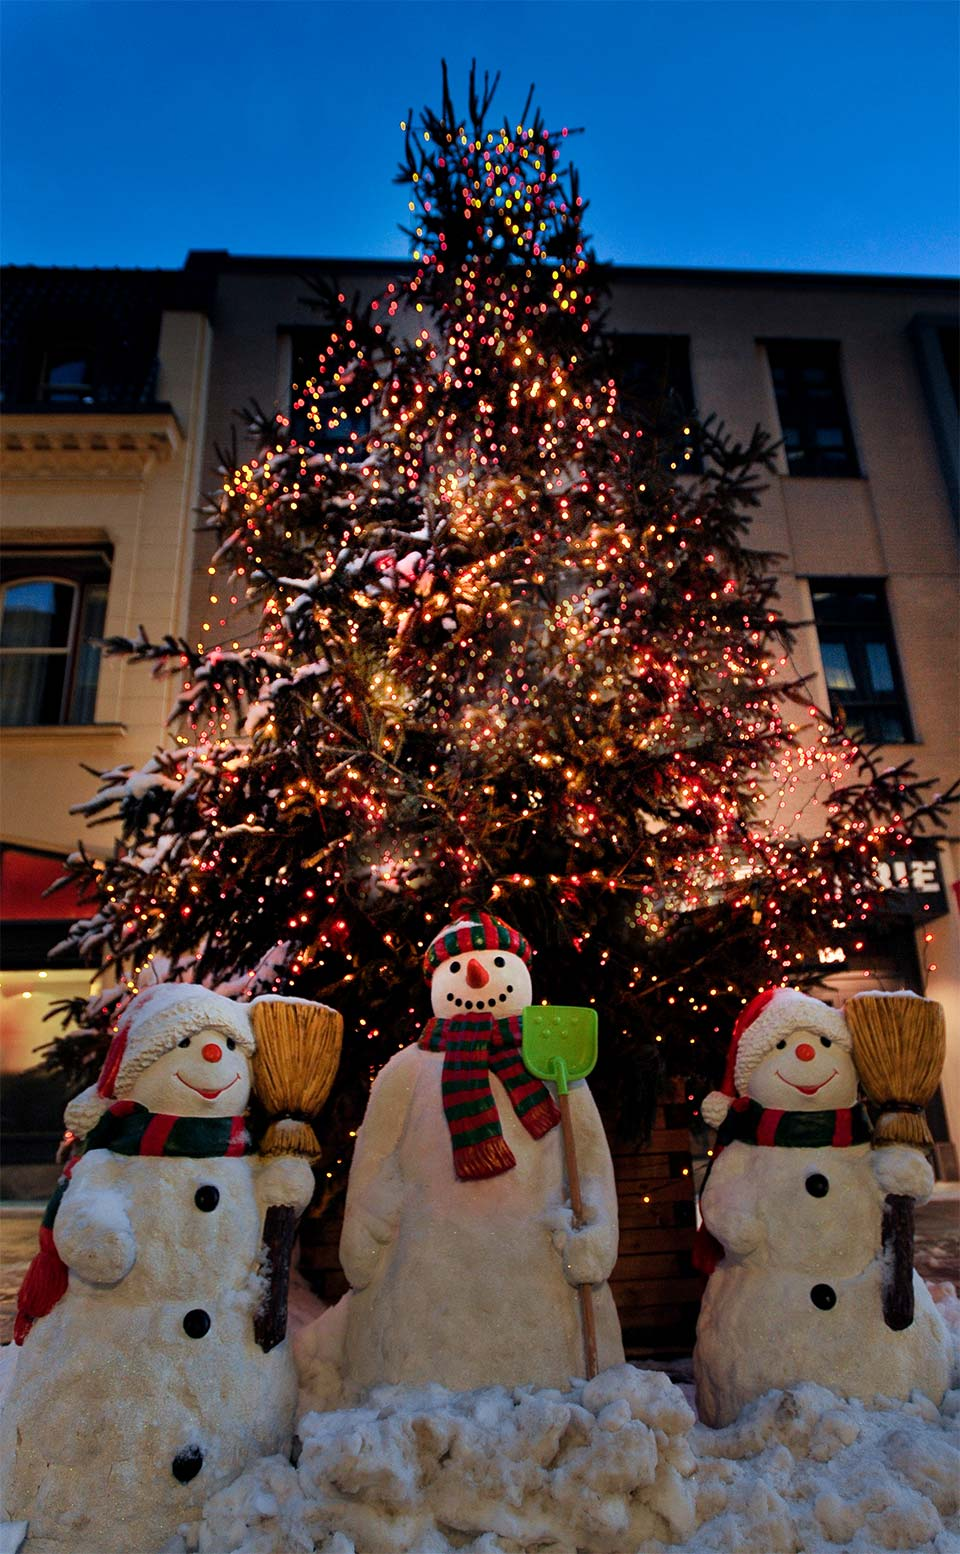 Christmas Tree and Snowmen